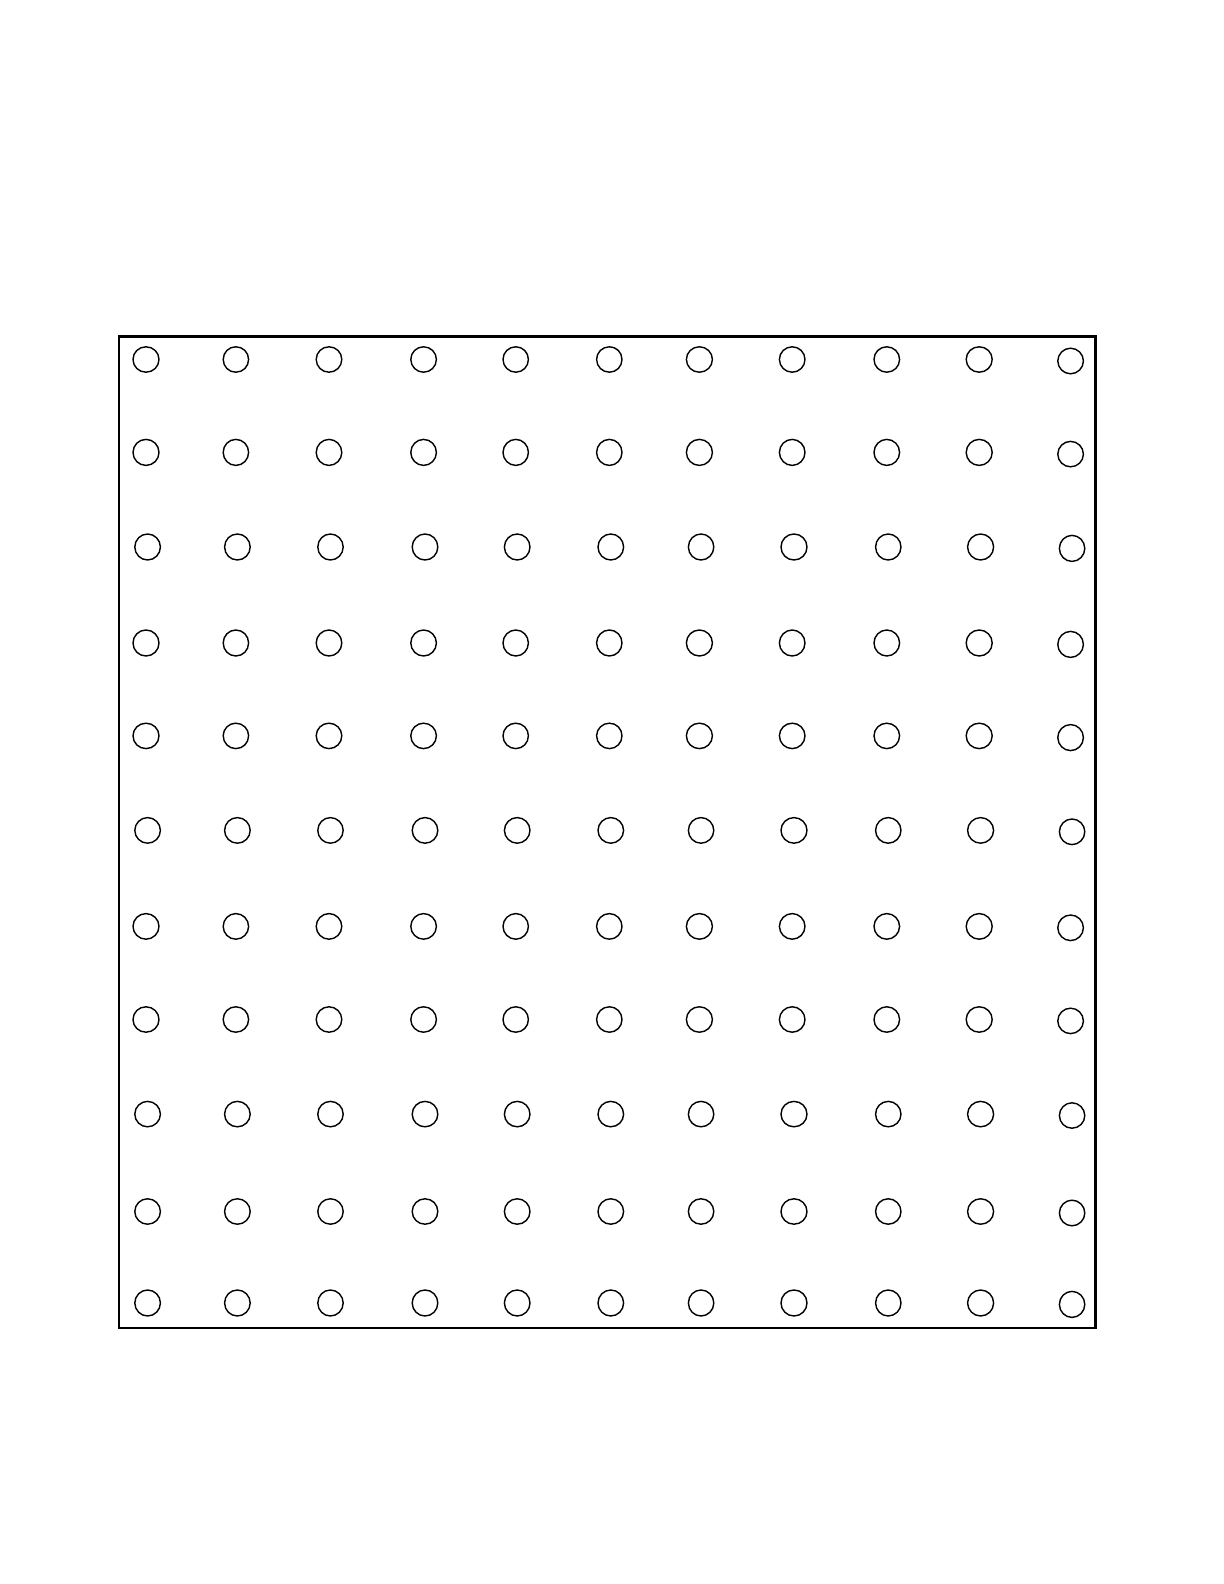 10x10 geoboard graph paper free download